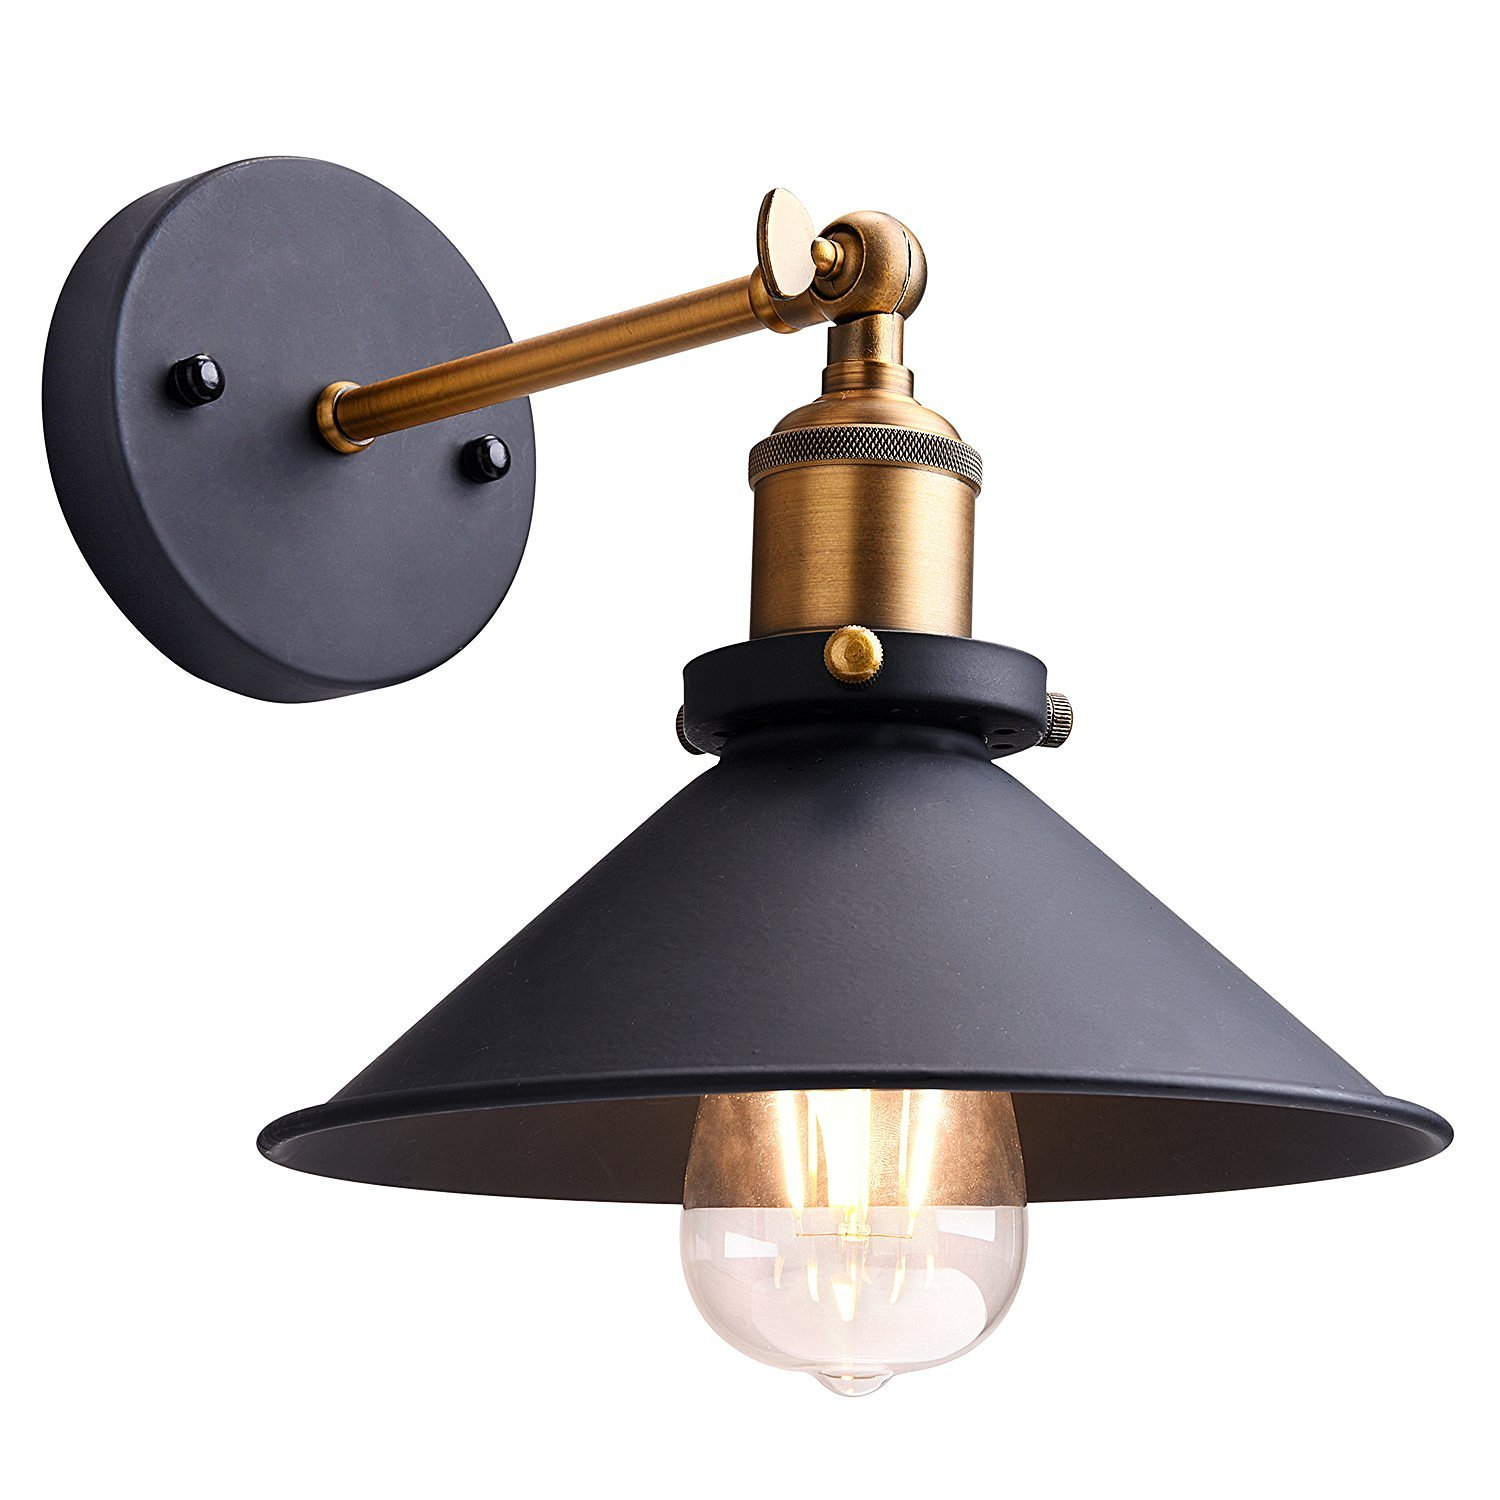 Vintage Industrial Exterior Wall Light: Sanyi Vintage Wall Light Fixture Industrial Edison